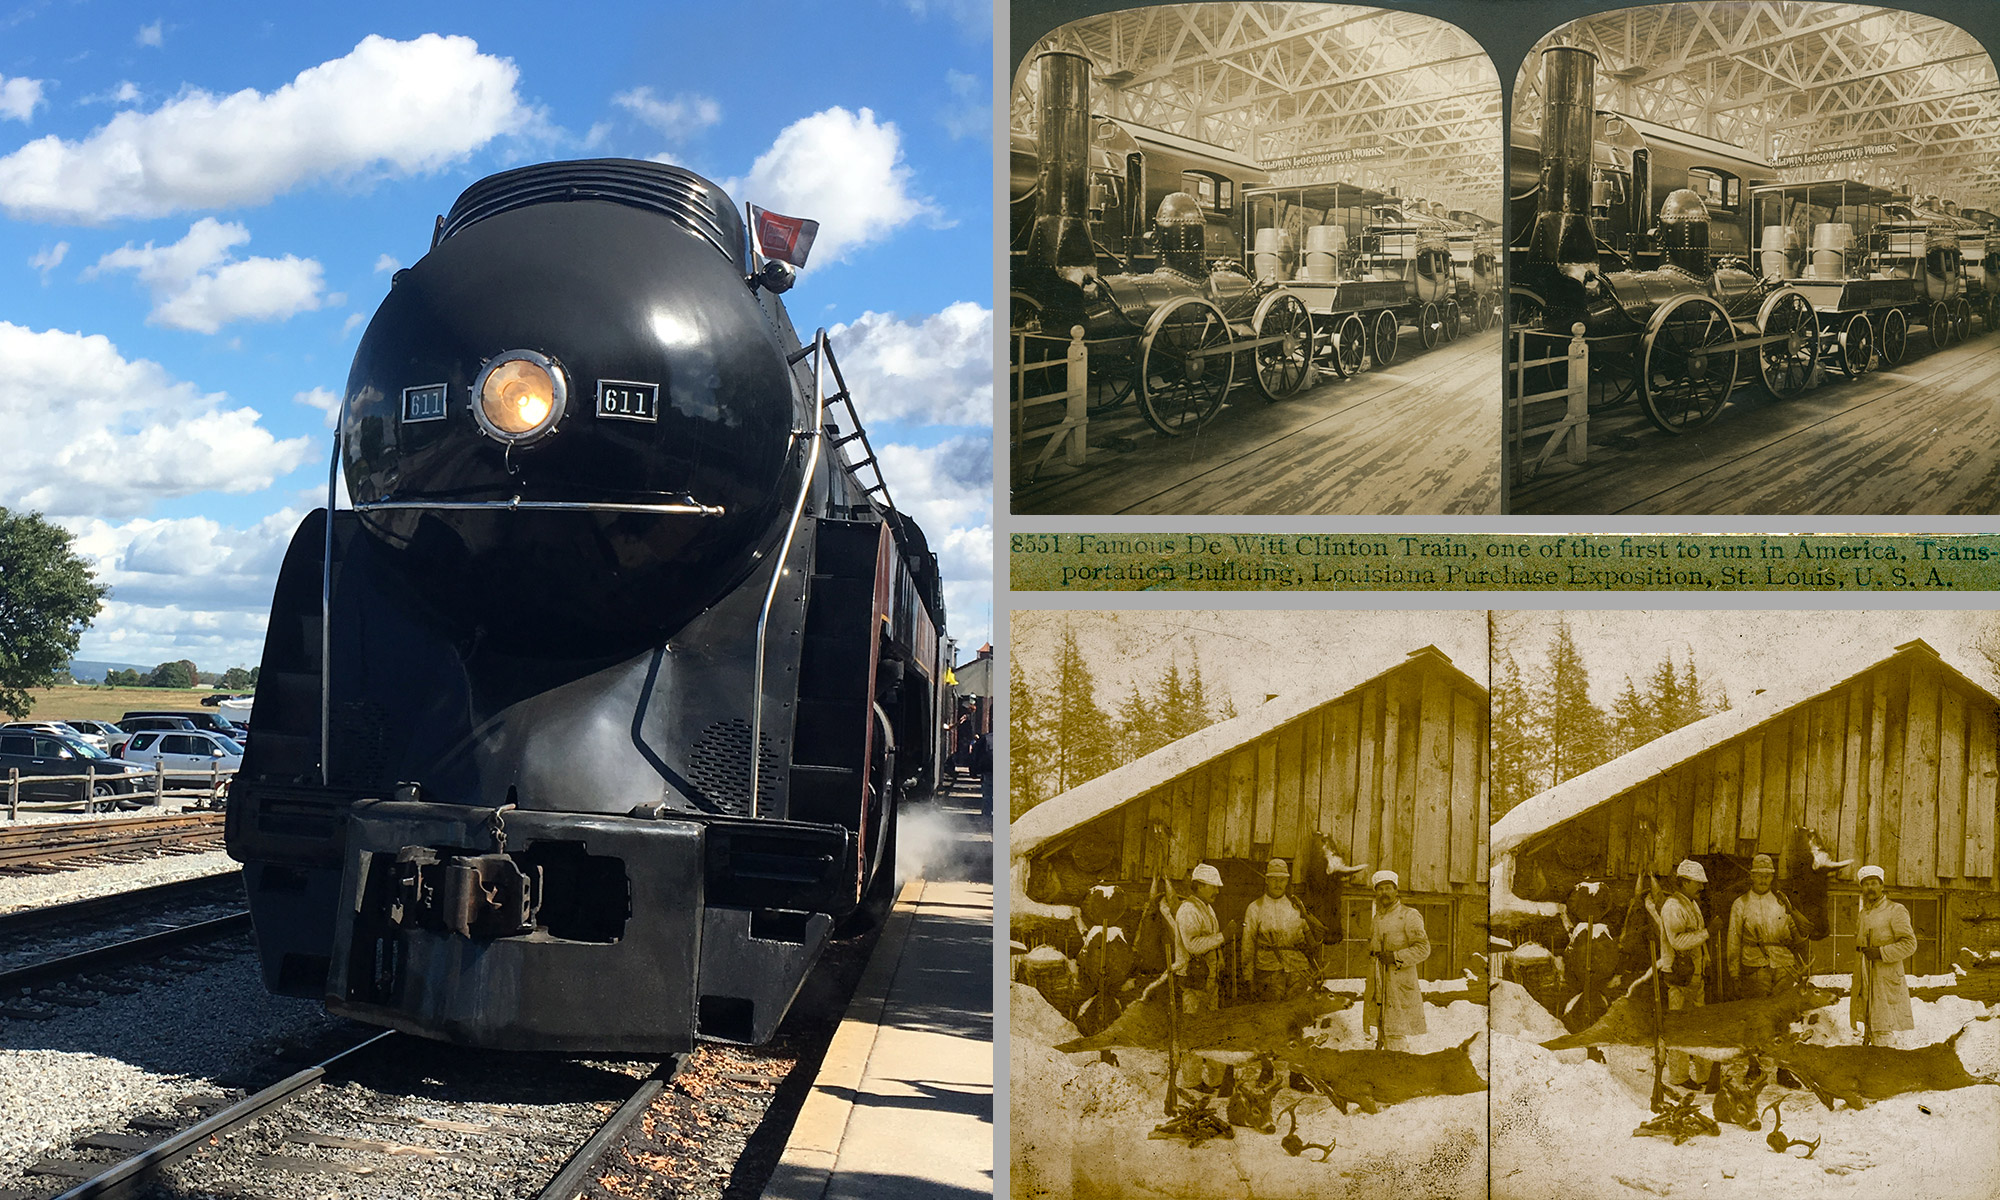 Strasburg, PA: Went for the trains. Came back with stereoviews & a scythe.